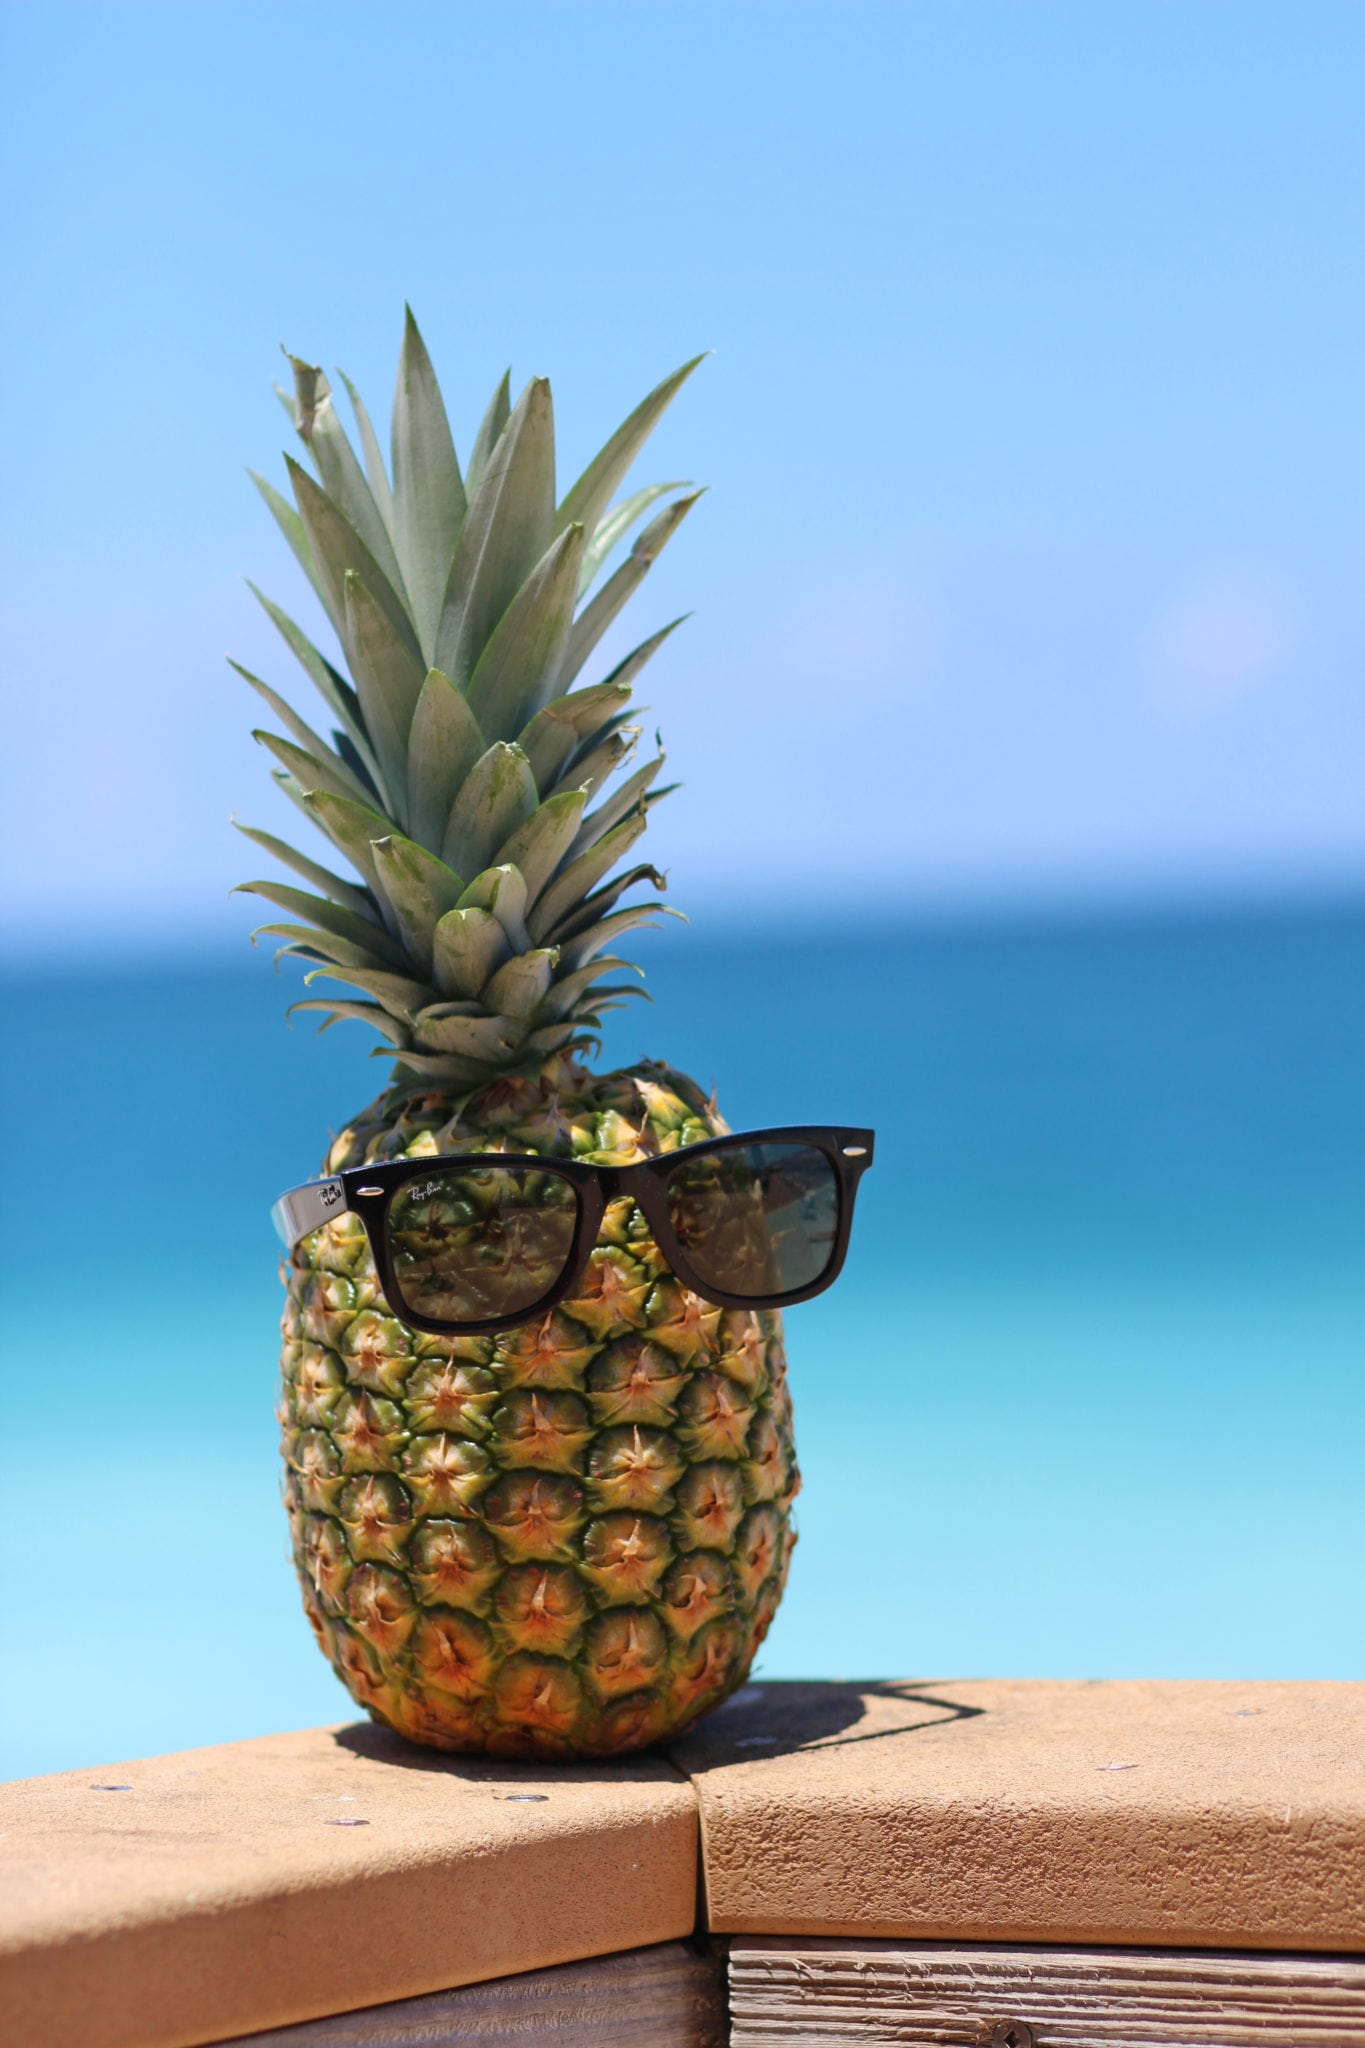 Cute Pineapple Iphone Wallpaper The Perfect Summer Vacation Dress Mash Elle